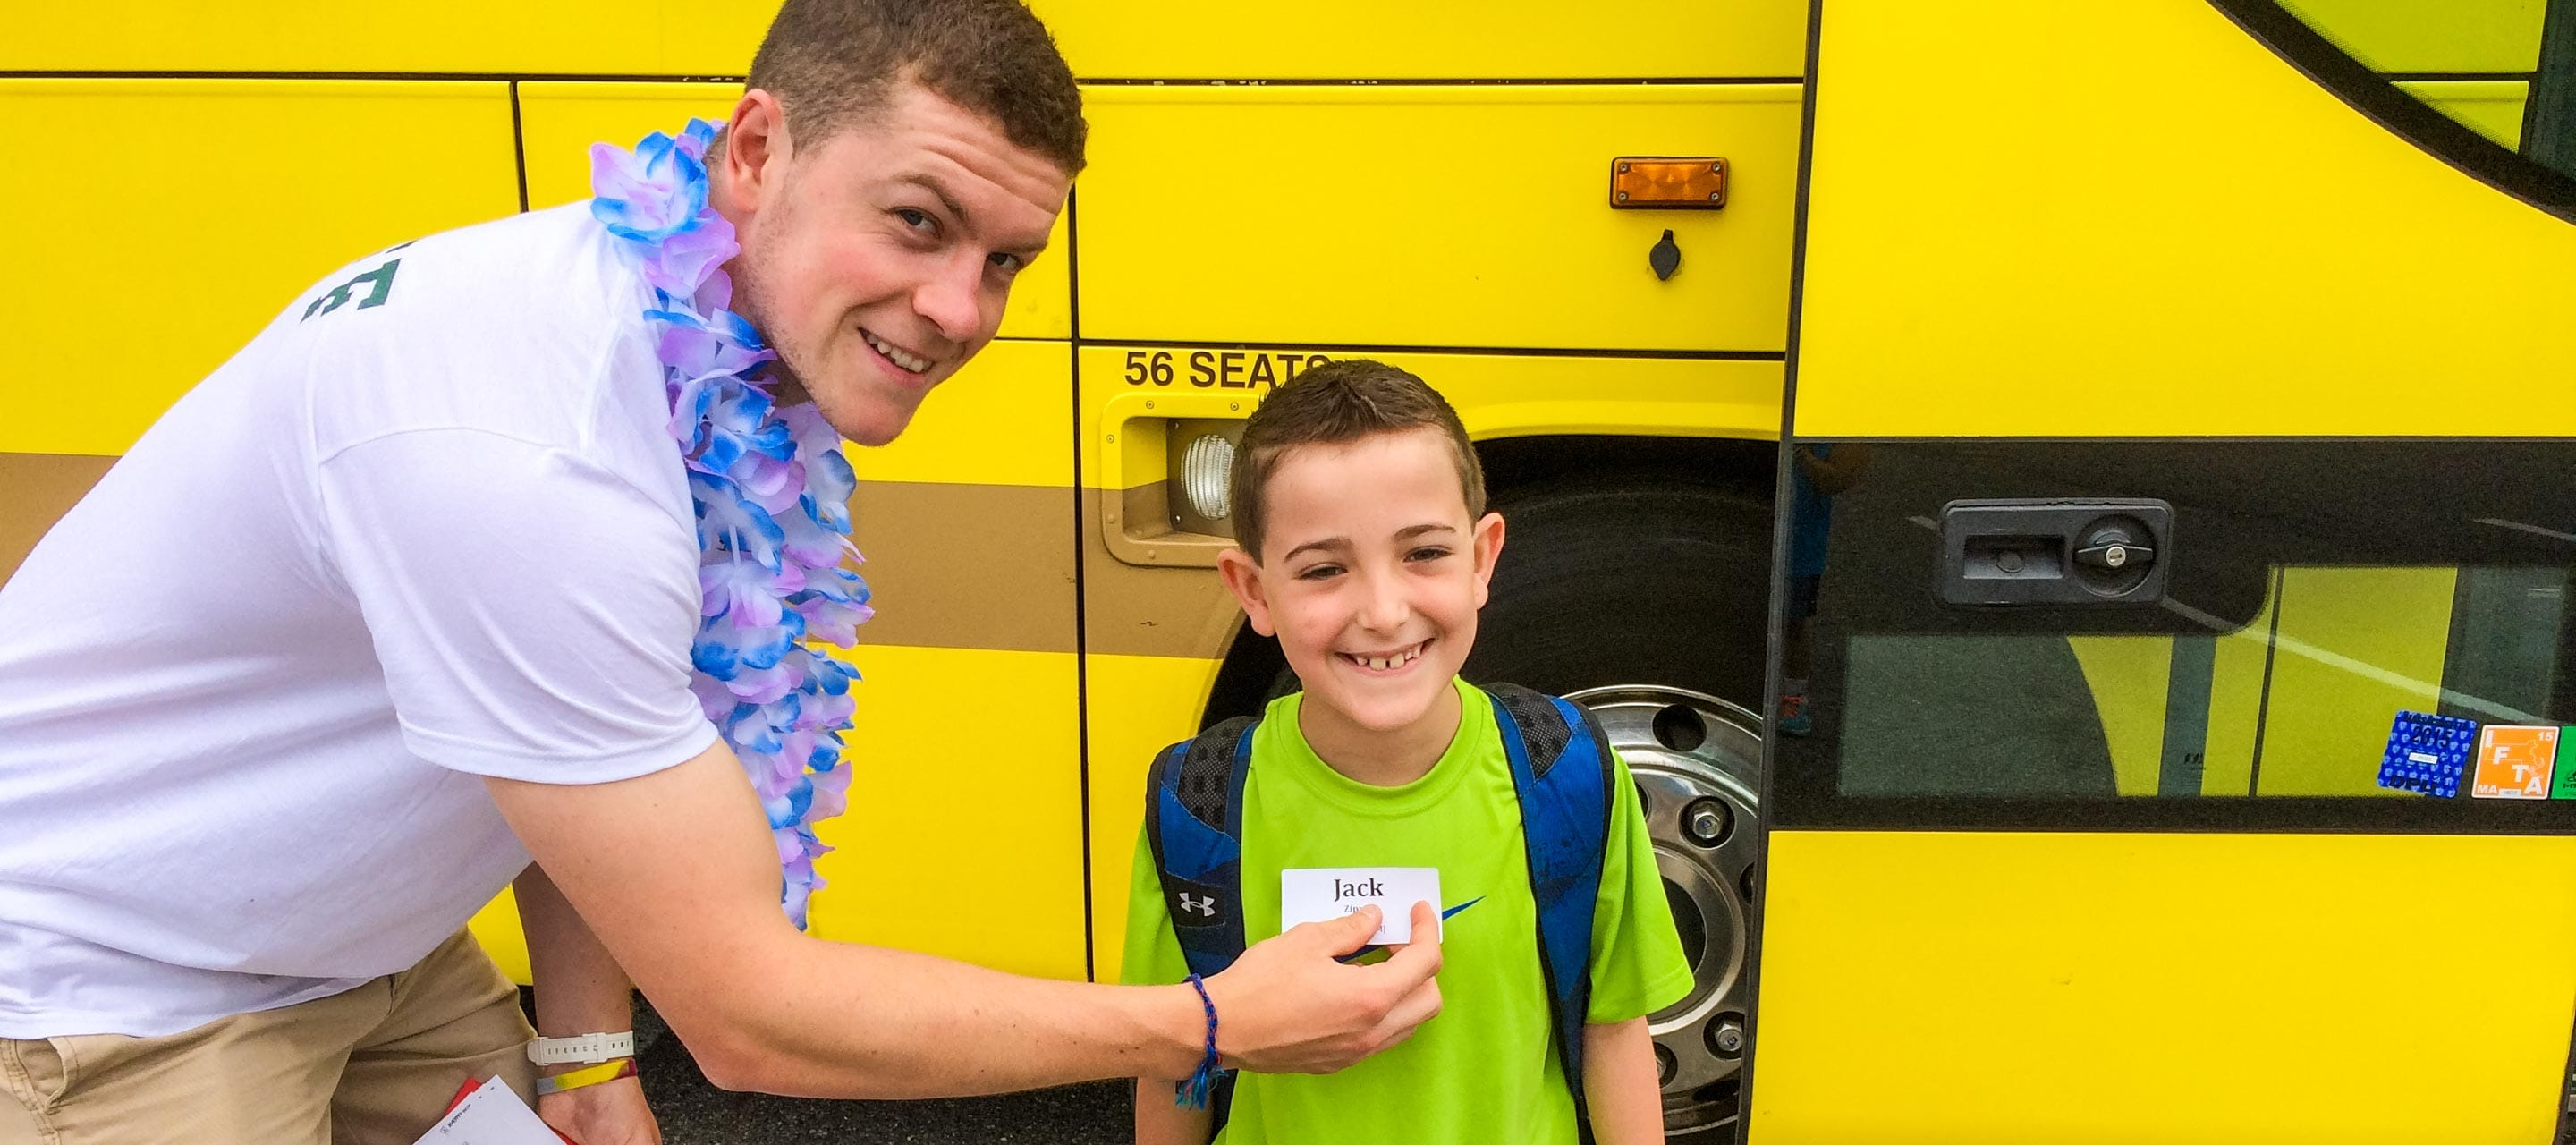 Putting name tag on camper by school bus